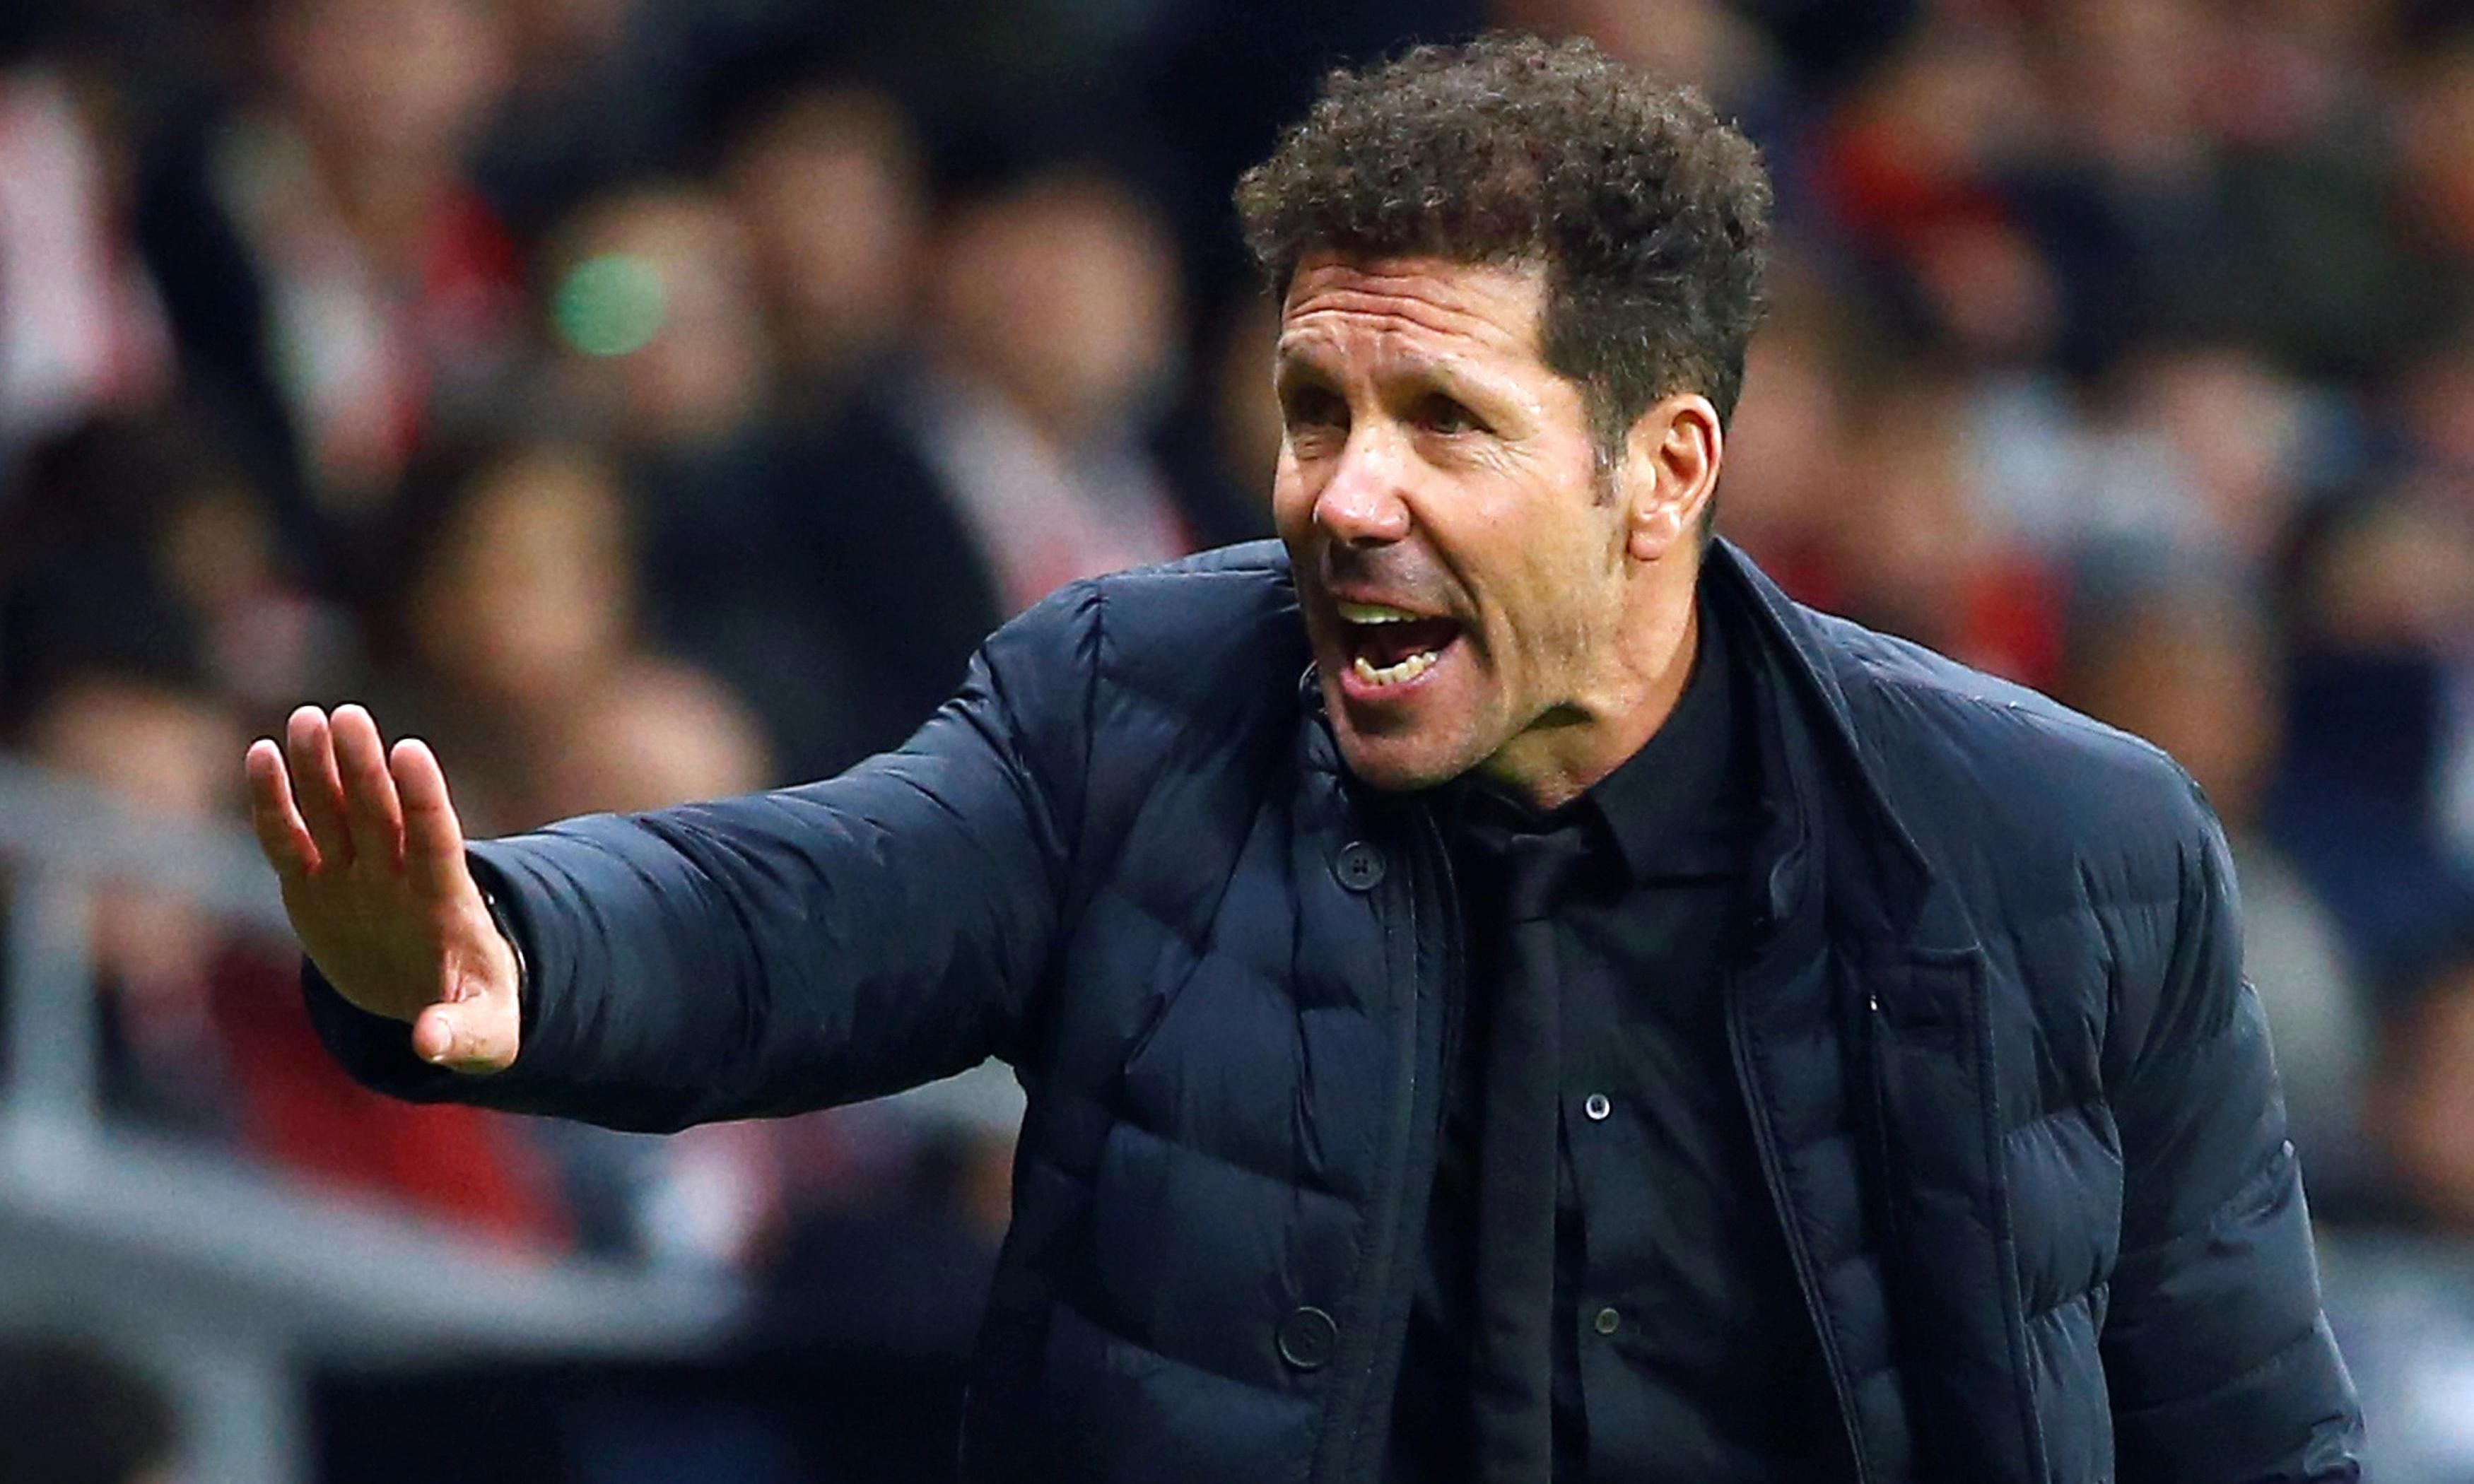 Diego Simeone's Atlético Madrid tackle Liverpool in battle of opposites